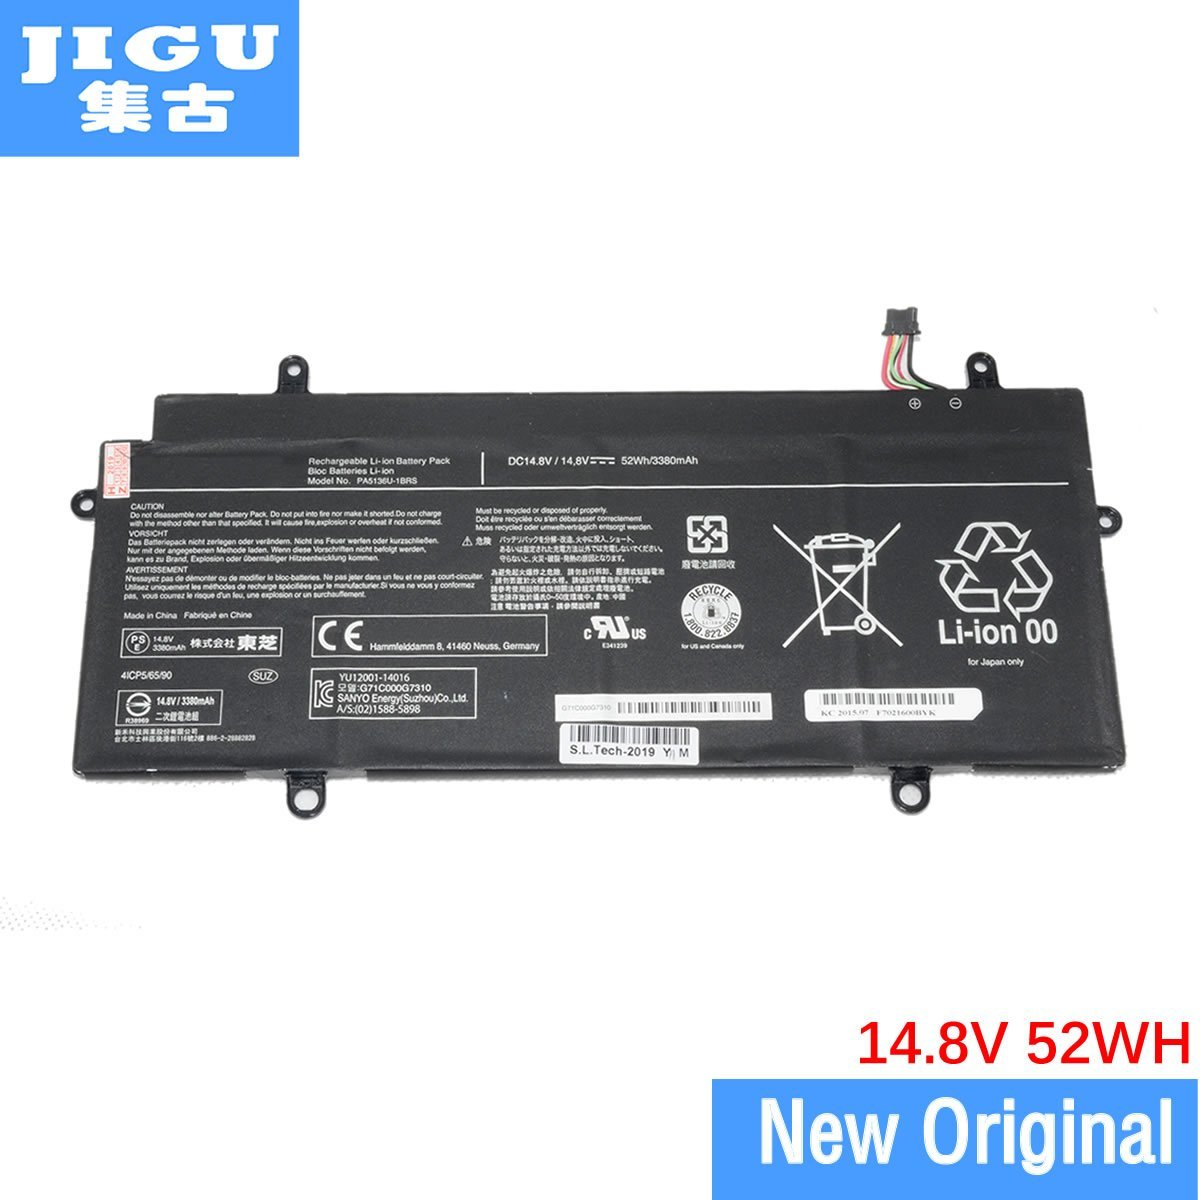 JIGU PA5136U-1BRS Original Laptop Battery For Toshiba For Portege Z30-C Z30 Z30-AK03S Z30-AK04S 15.2V 52WH - GreatEagleInc